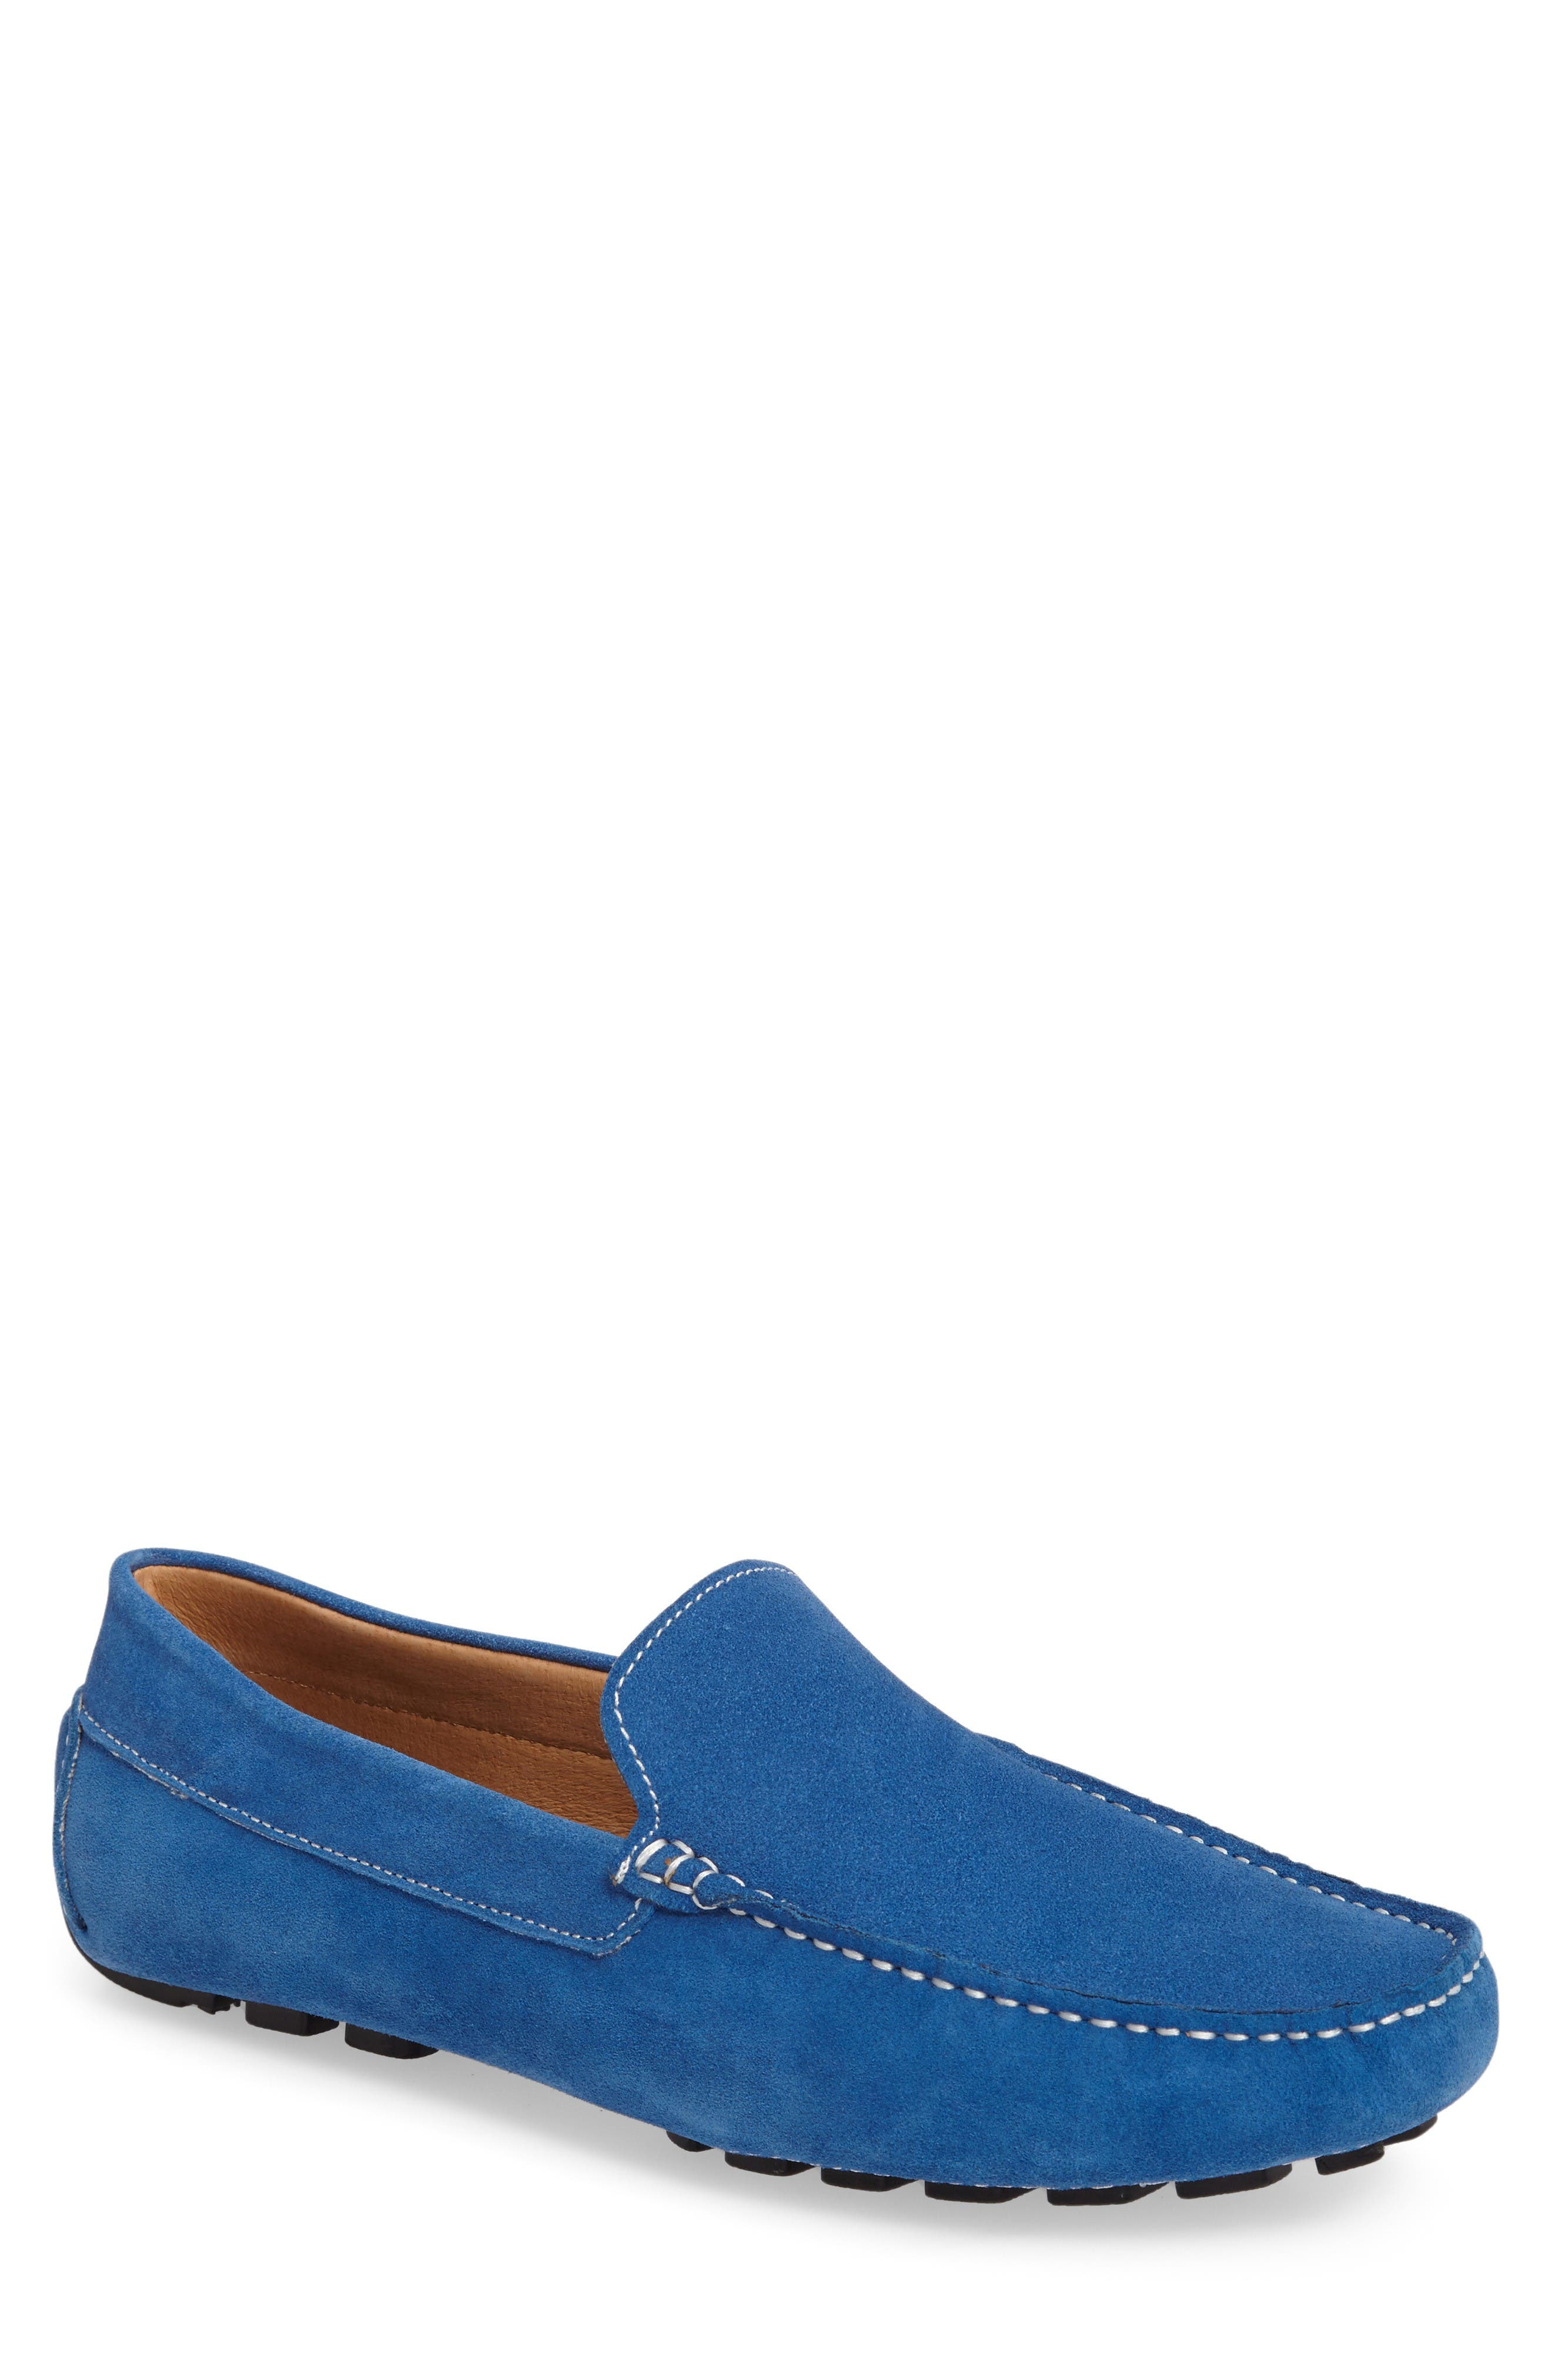 'Picasso' Slip-On Driver,                         Main,                         color, Royal Suede